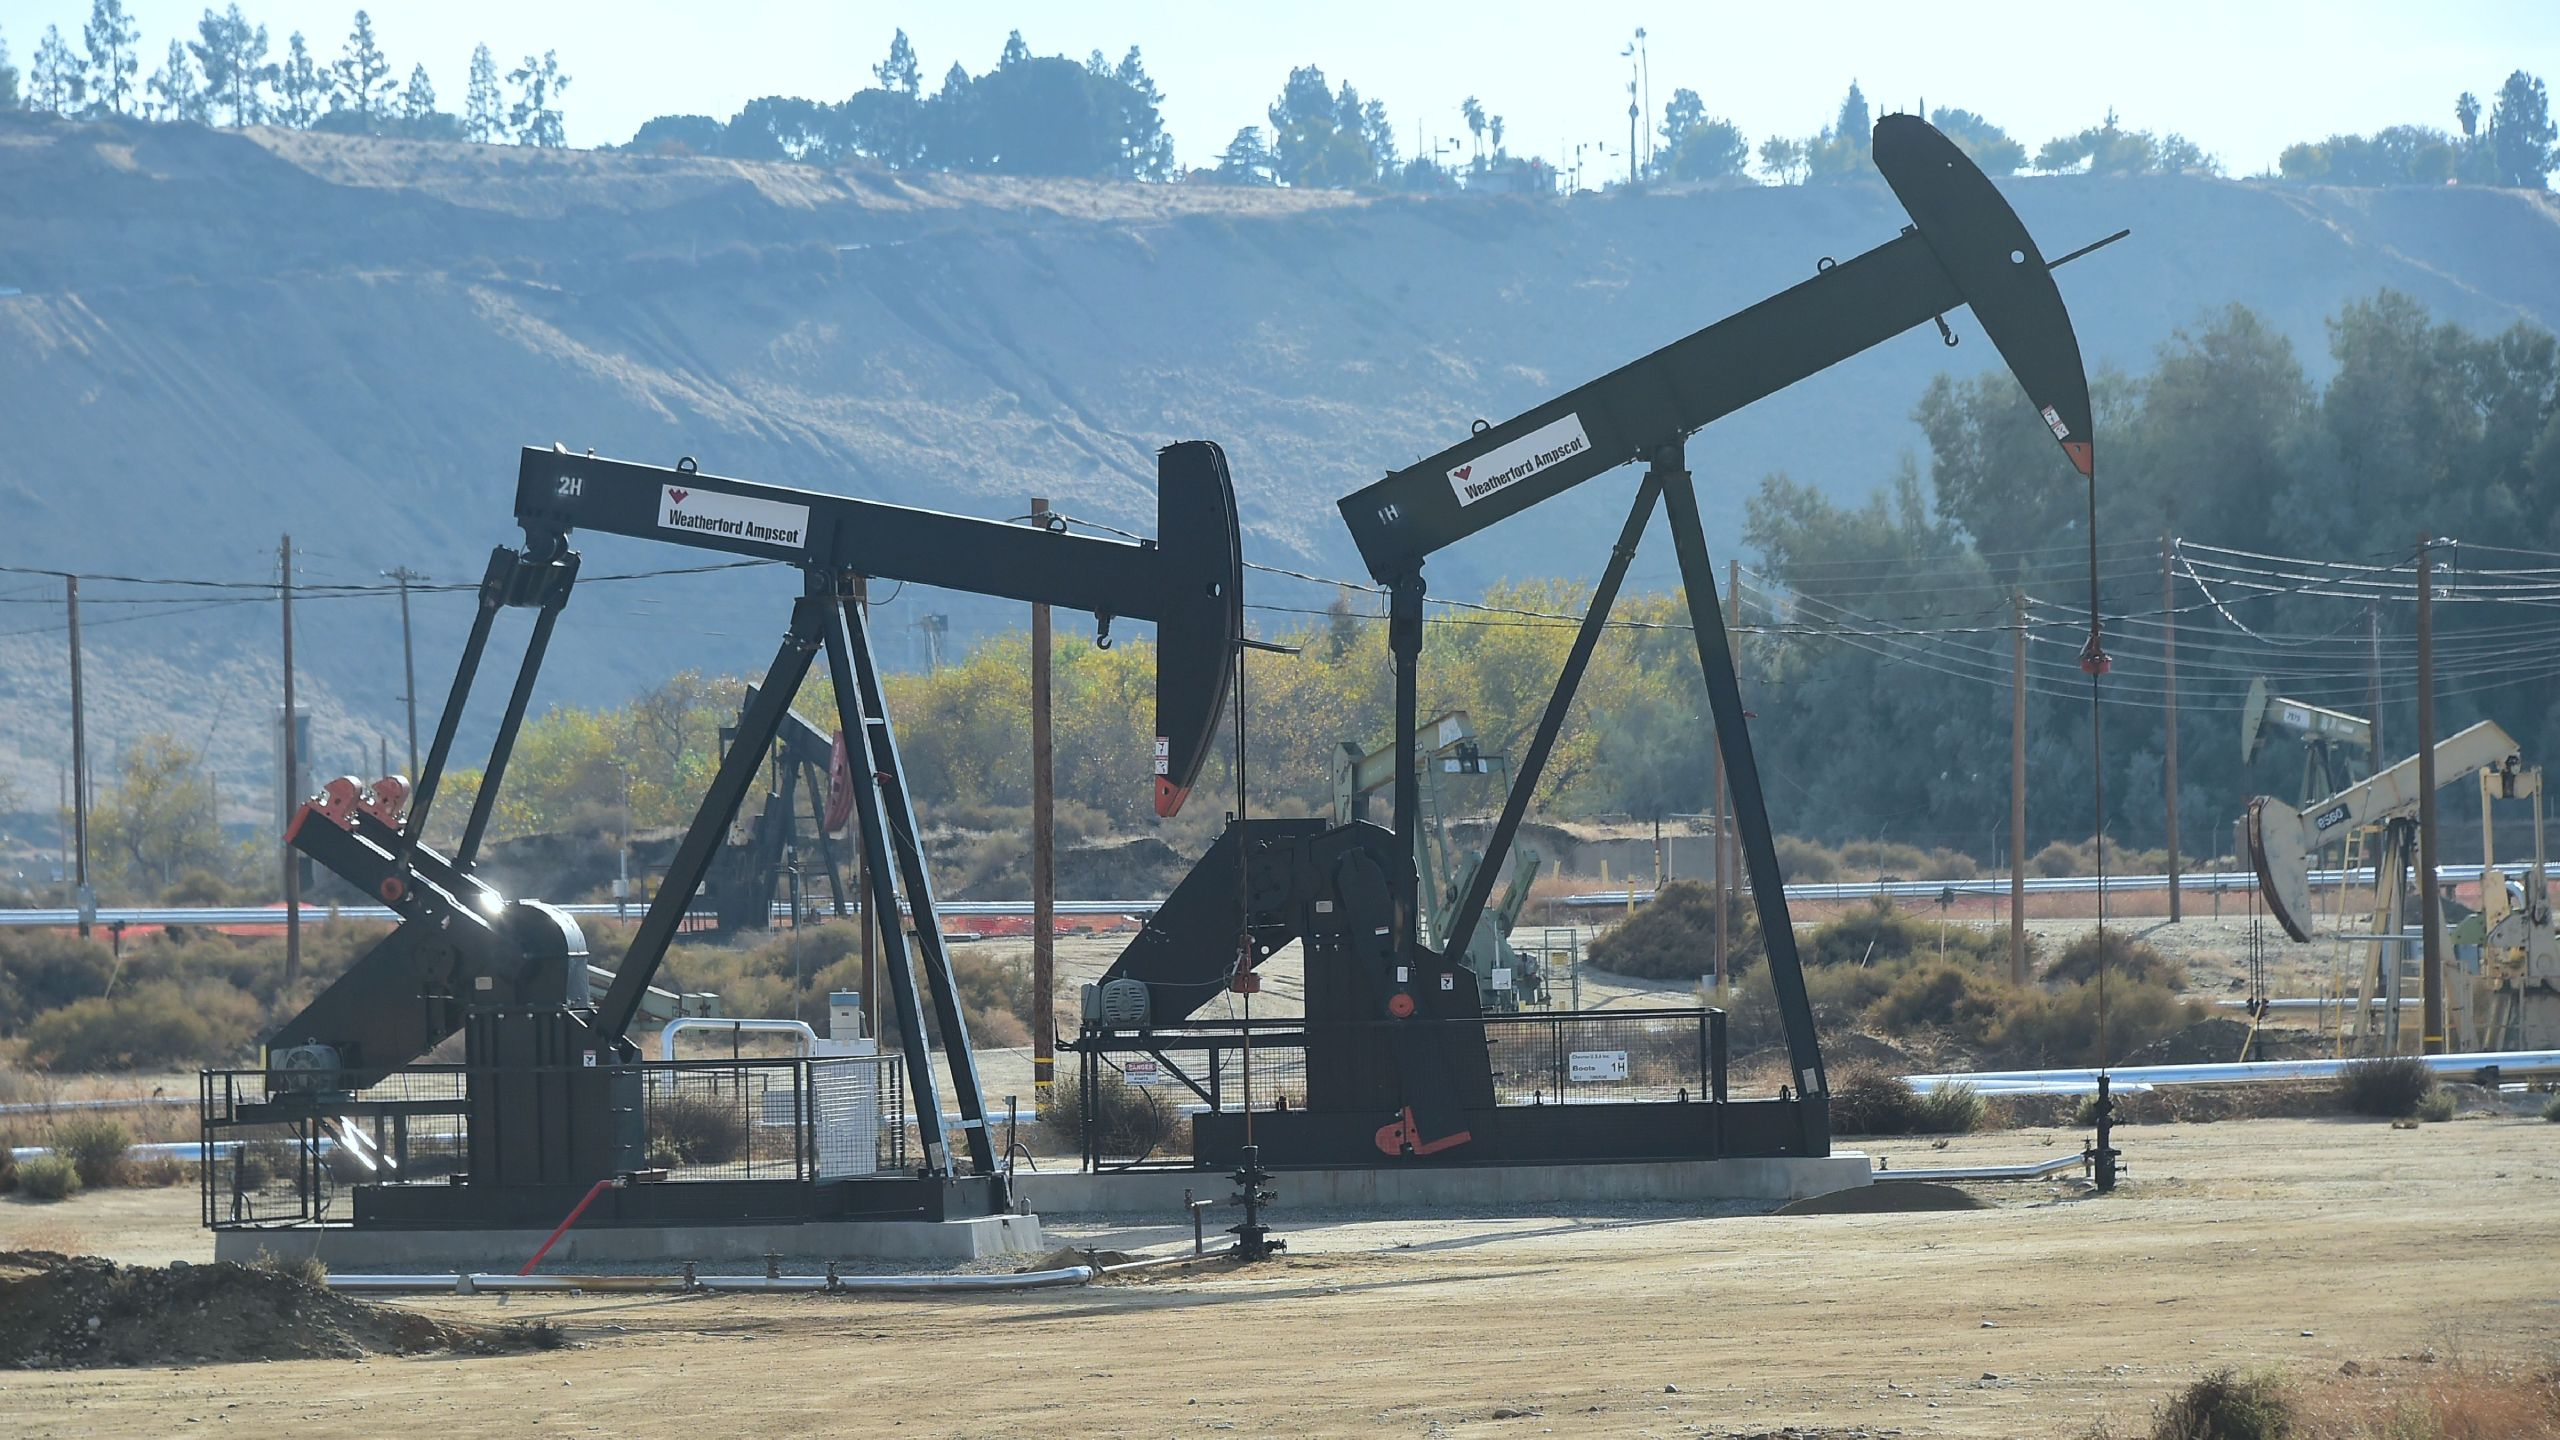 Oil derricks at the Chevron Oil Field in Bakersfield are seen on Nov. 21, 2016. (Credit: Frederic J. Brown / AFP / Getty Images)